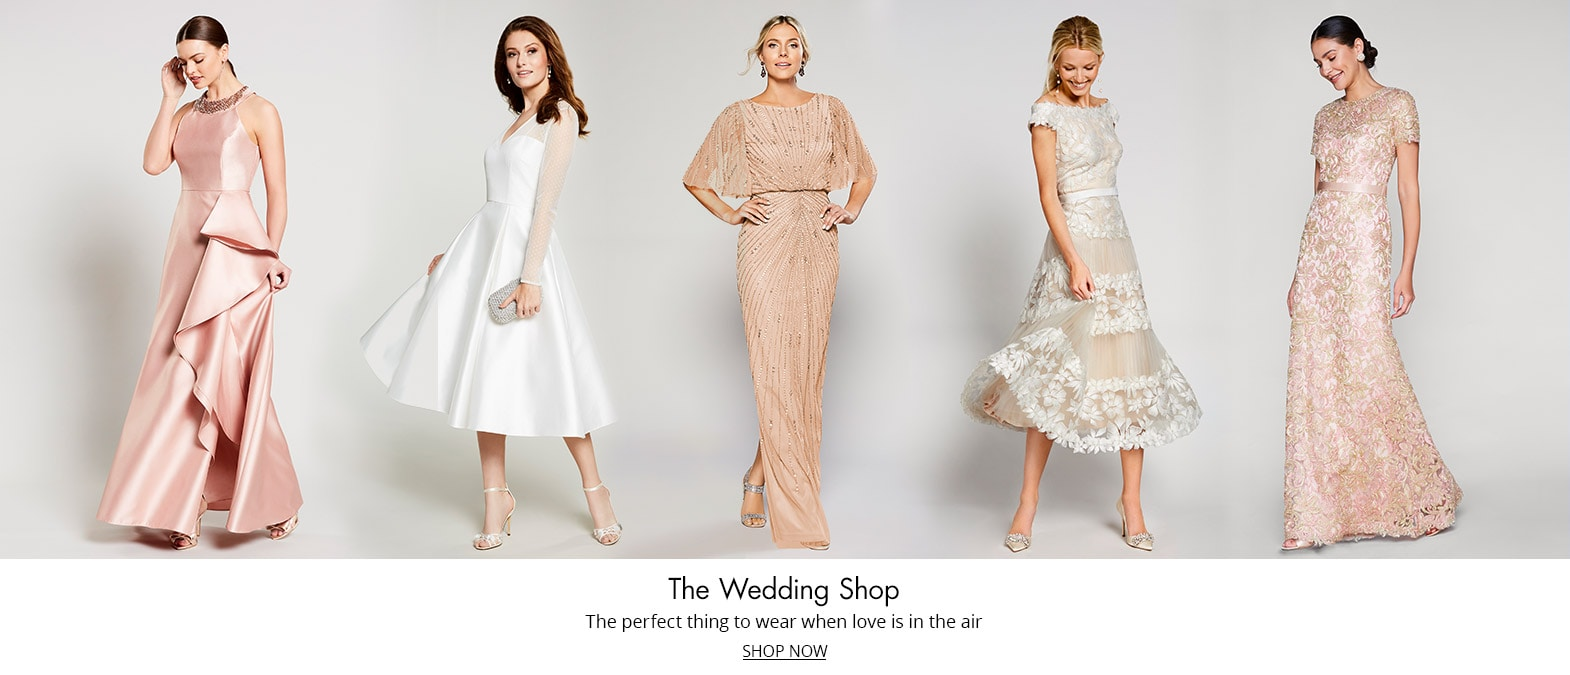 Women's wedding shop